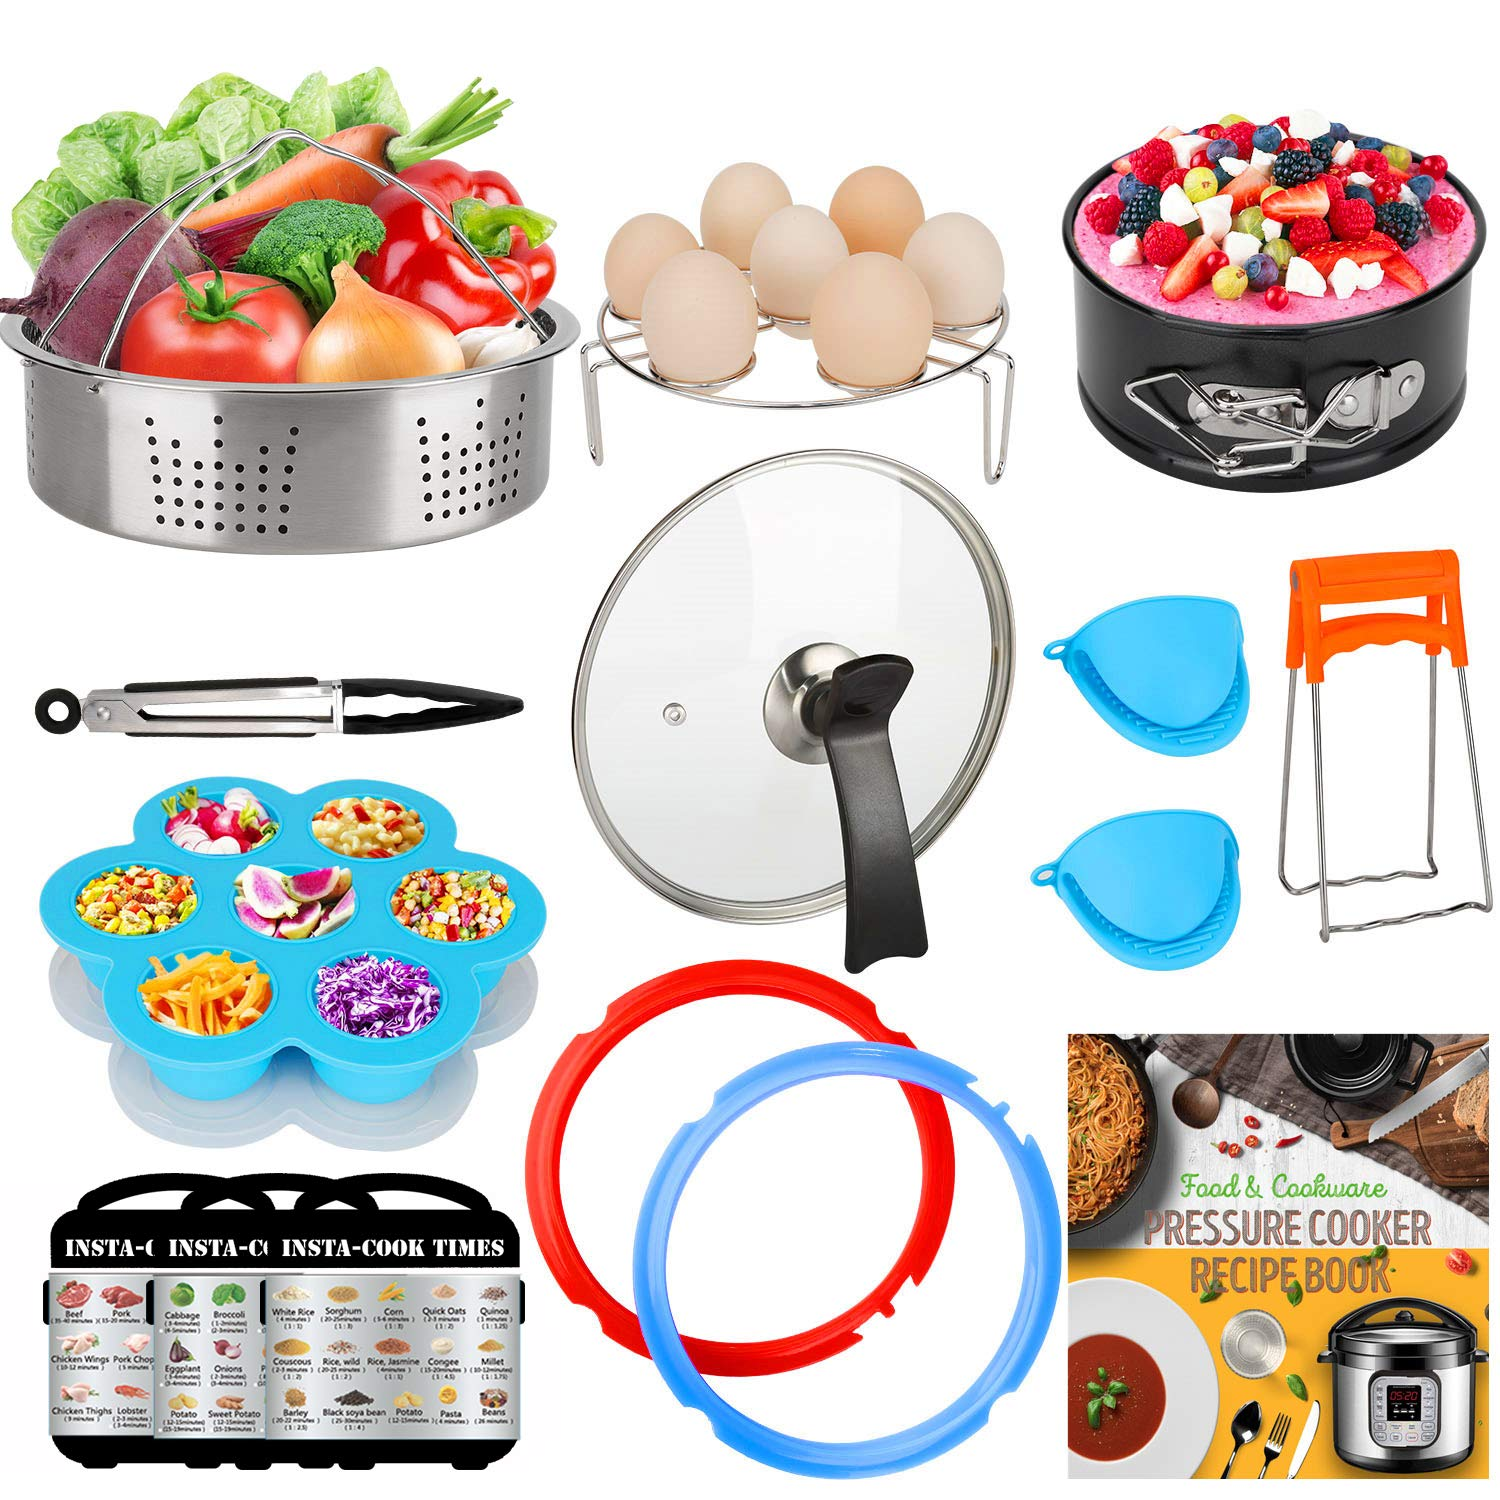 3-Quart-Accessories-Set with Tempered Glass Lid Sealing Rings Compatible with Instant Pot Mini 3, Including Steamer Basket Springform Pan Egg Rack Trivet Works with 3 Qt Instapot, Cookbook, Cover by Nice Kitchen